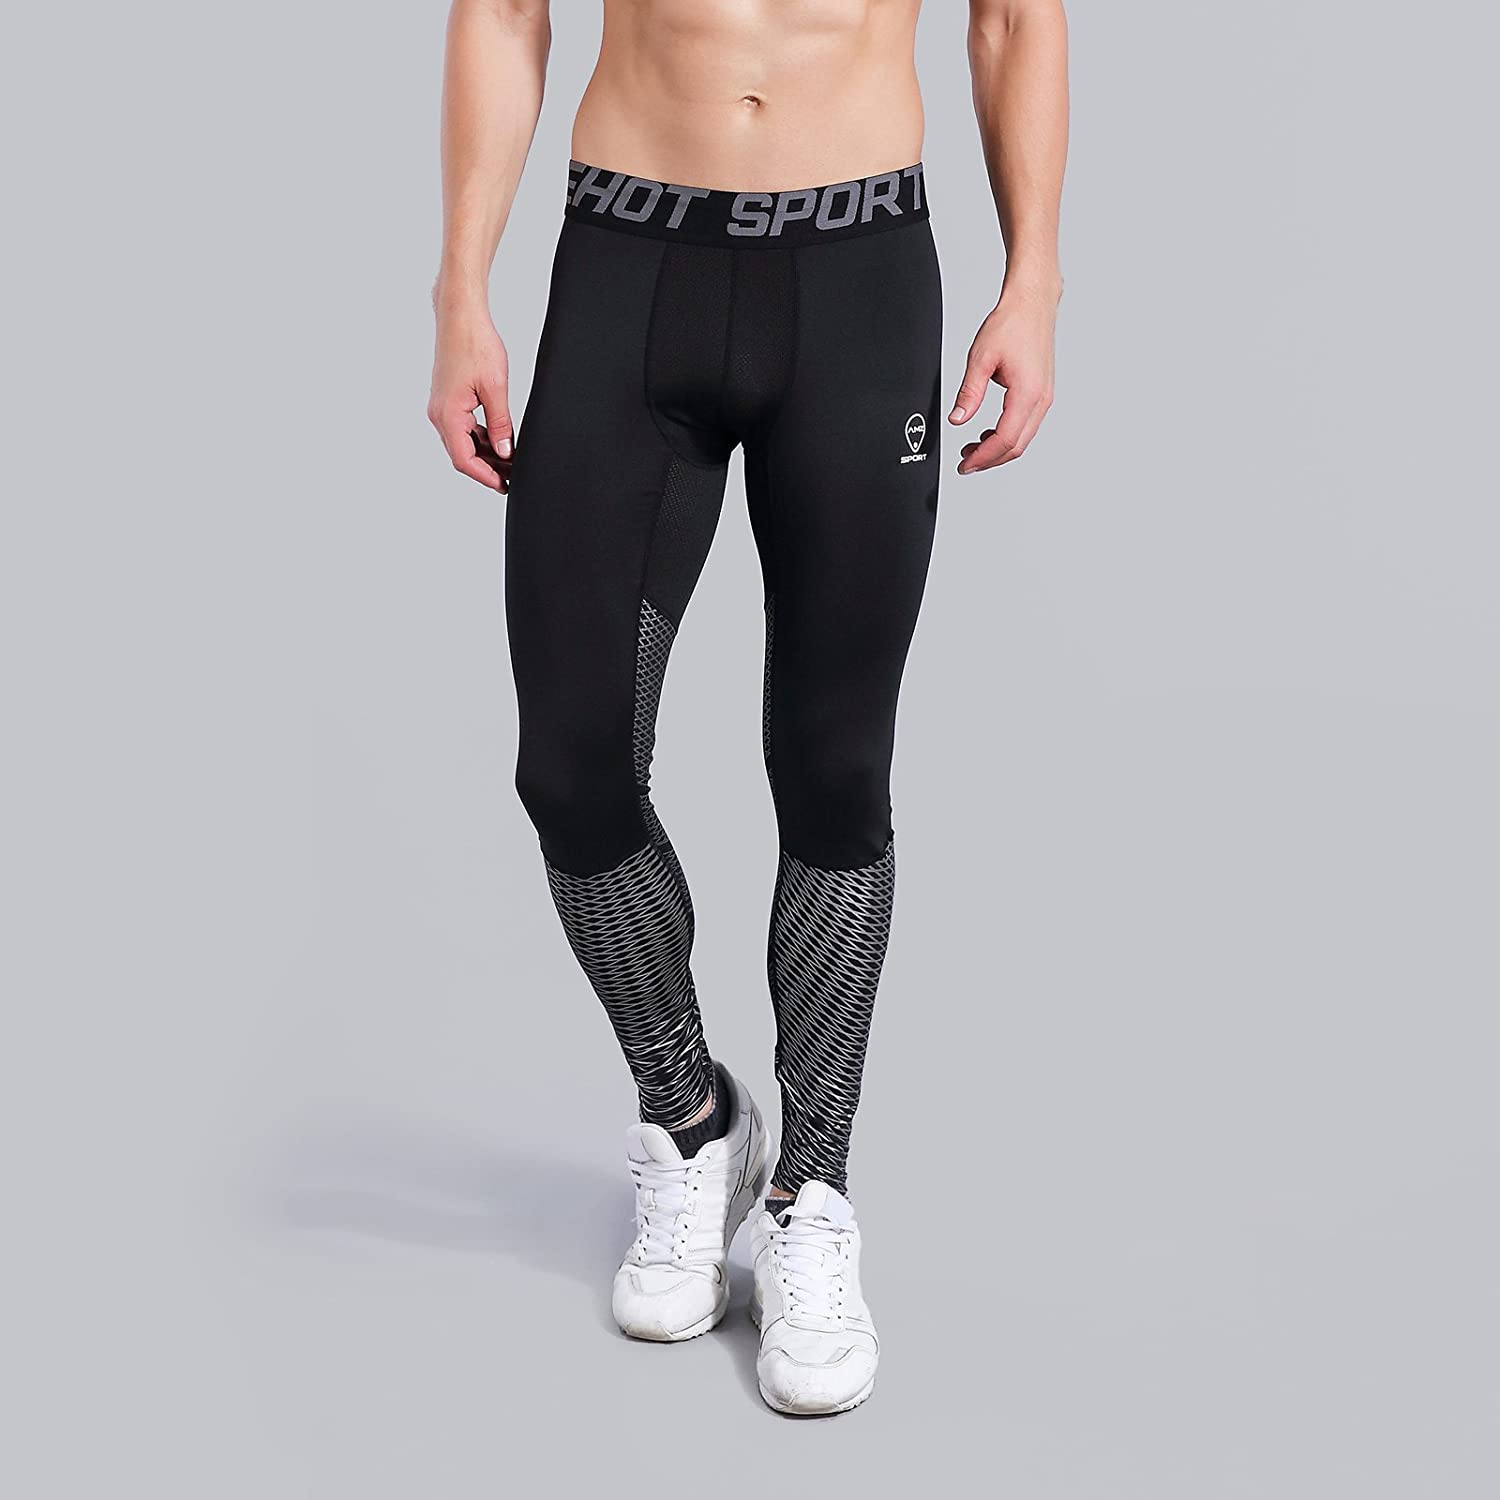 AMZSPORT Mens Sports Compression Tights Cool Dry Baselayer Leggings Pro Traning Pants for All Season